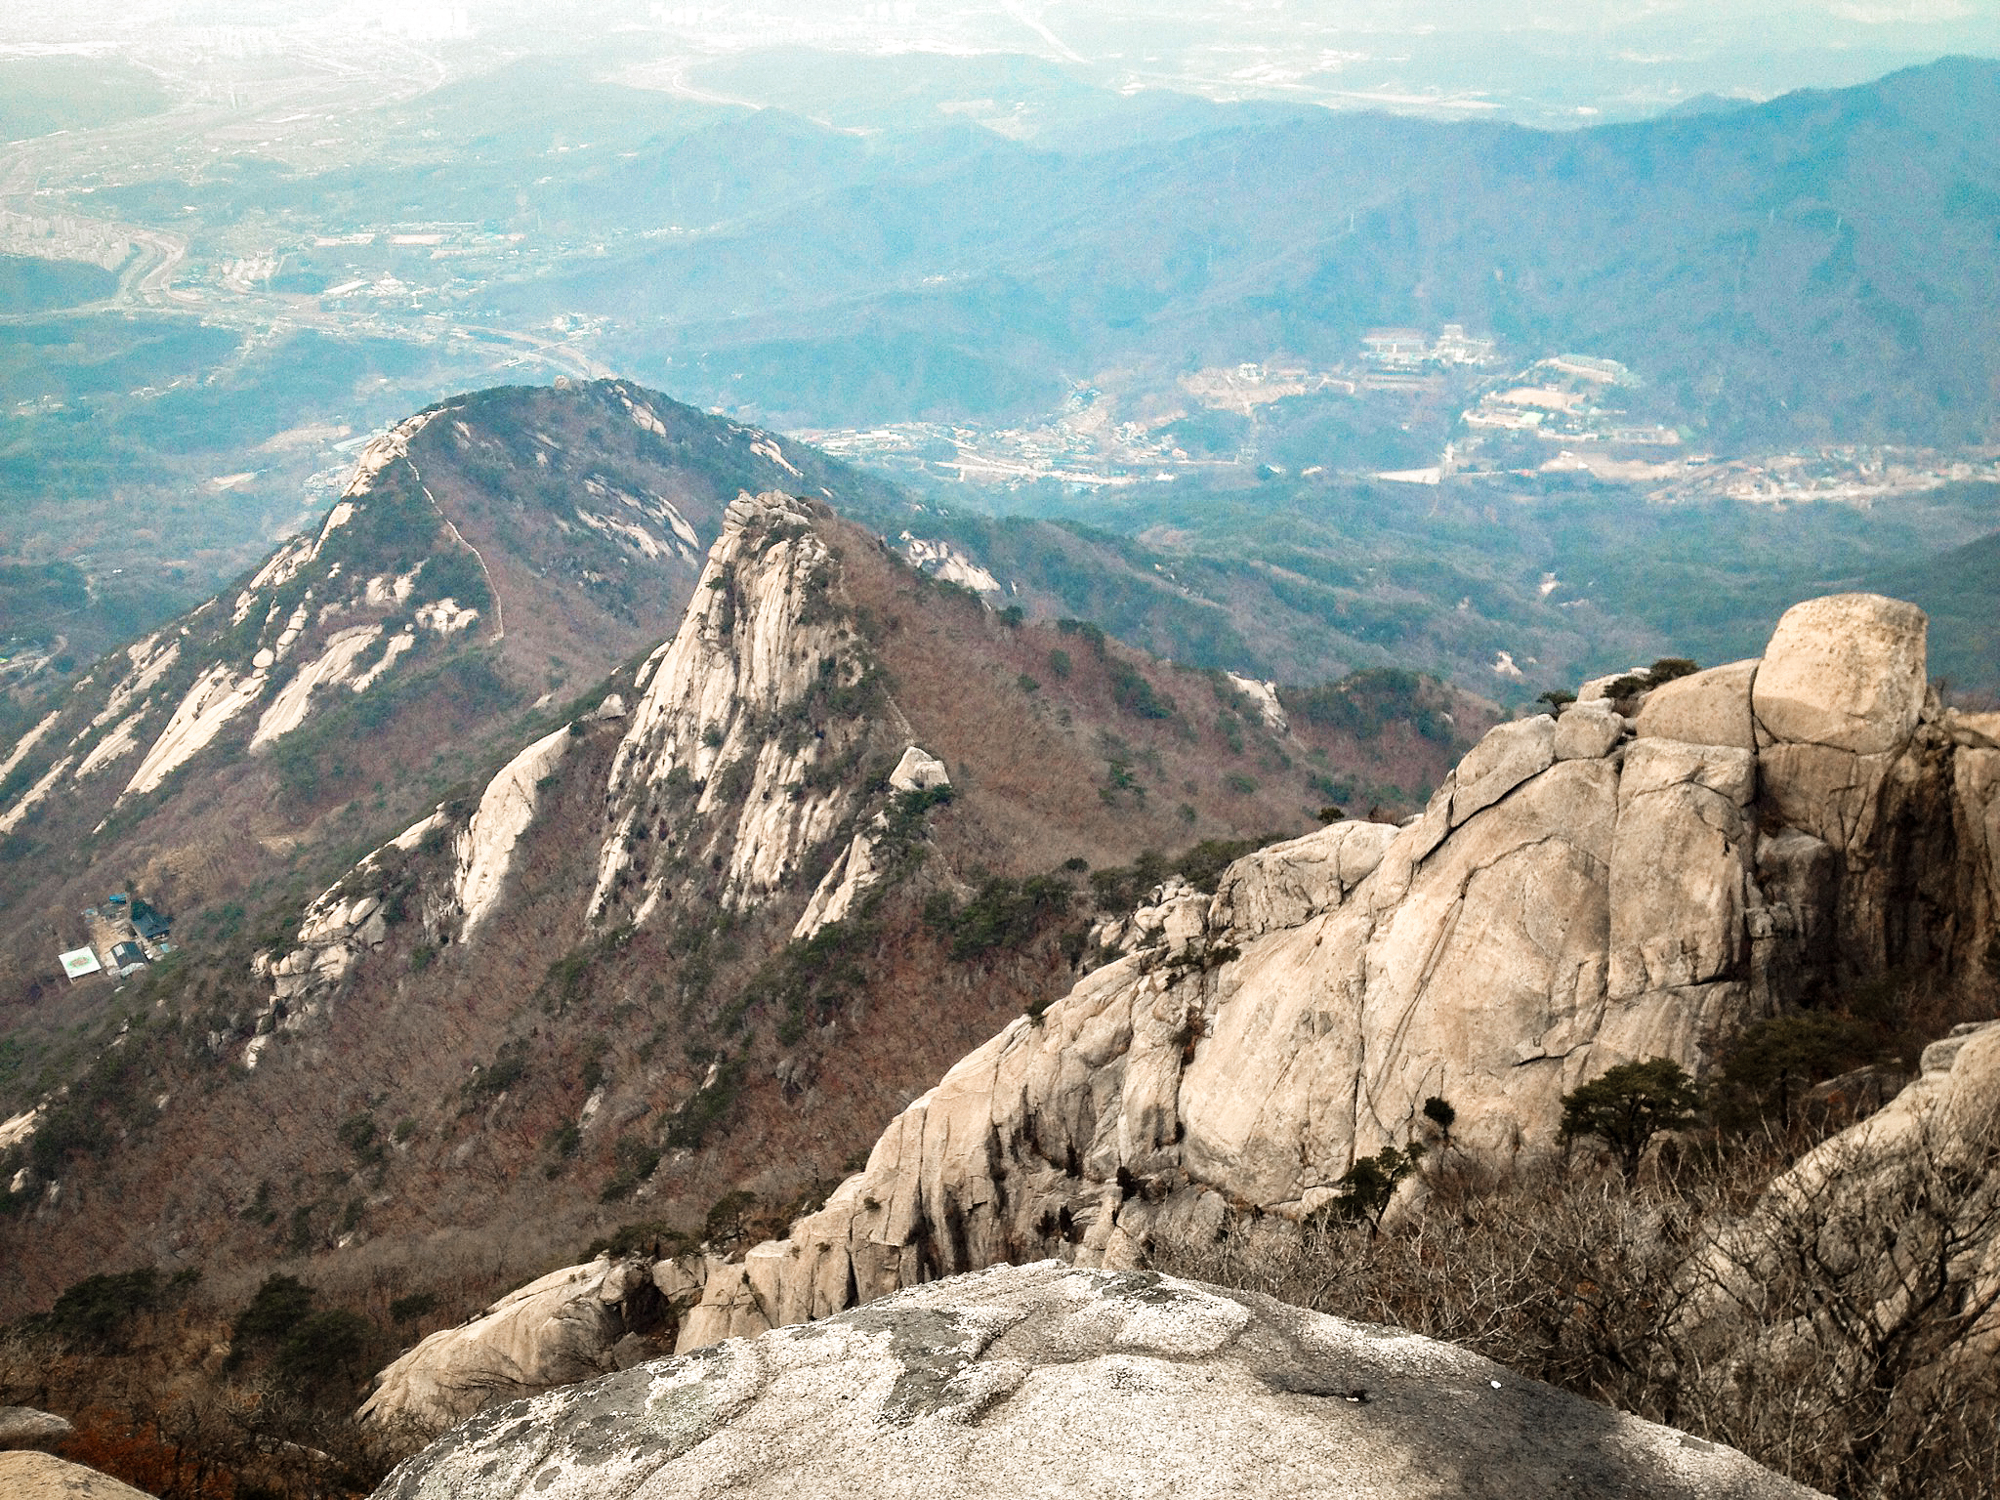 Bukhansan Mountain